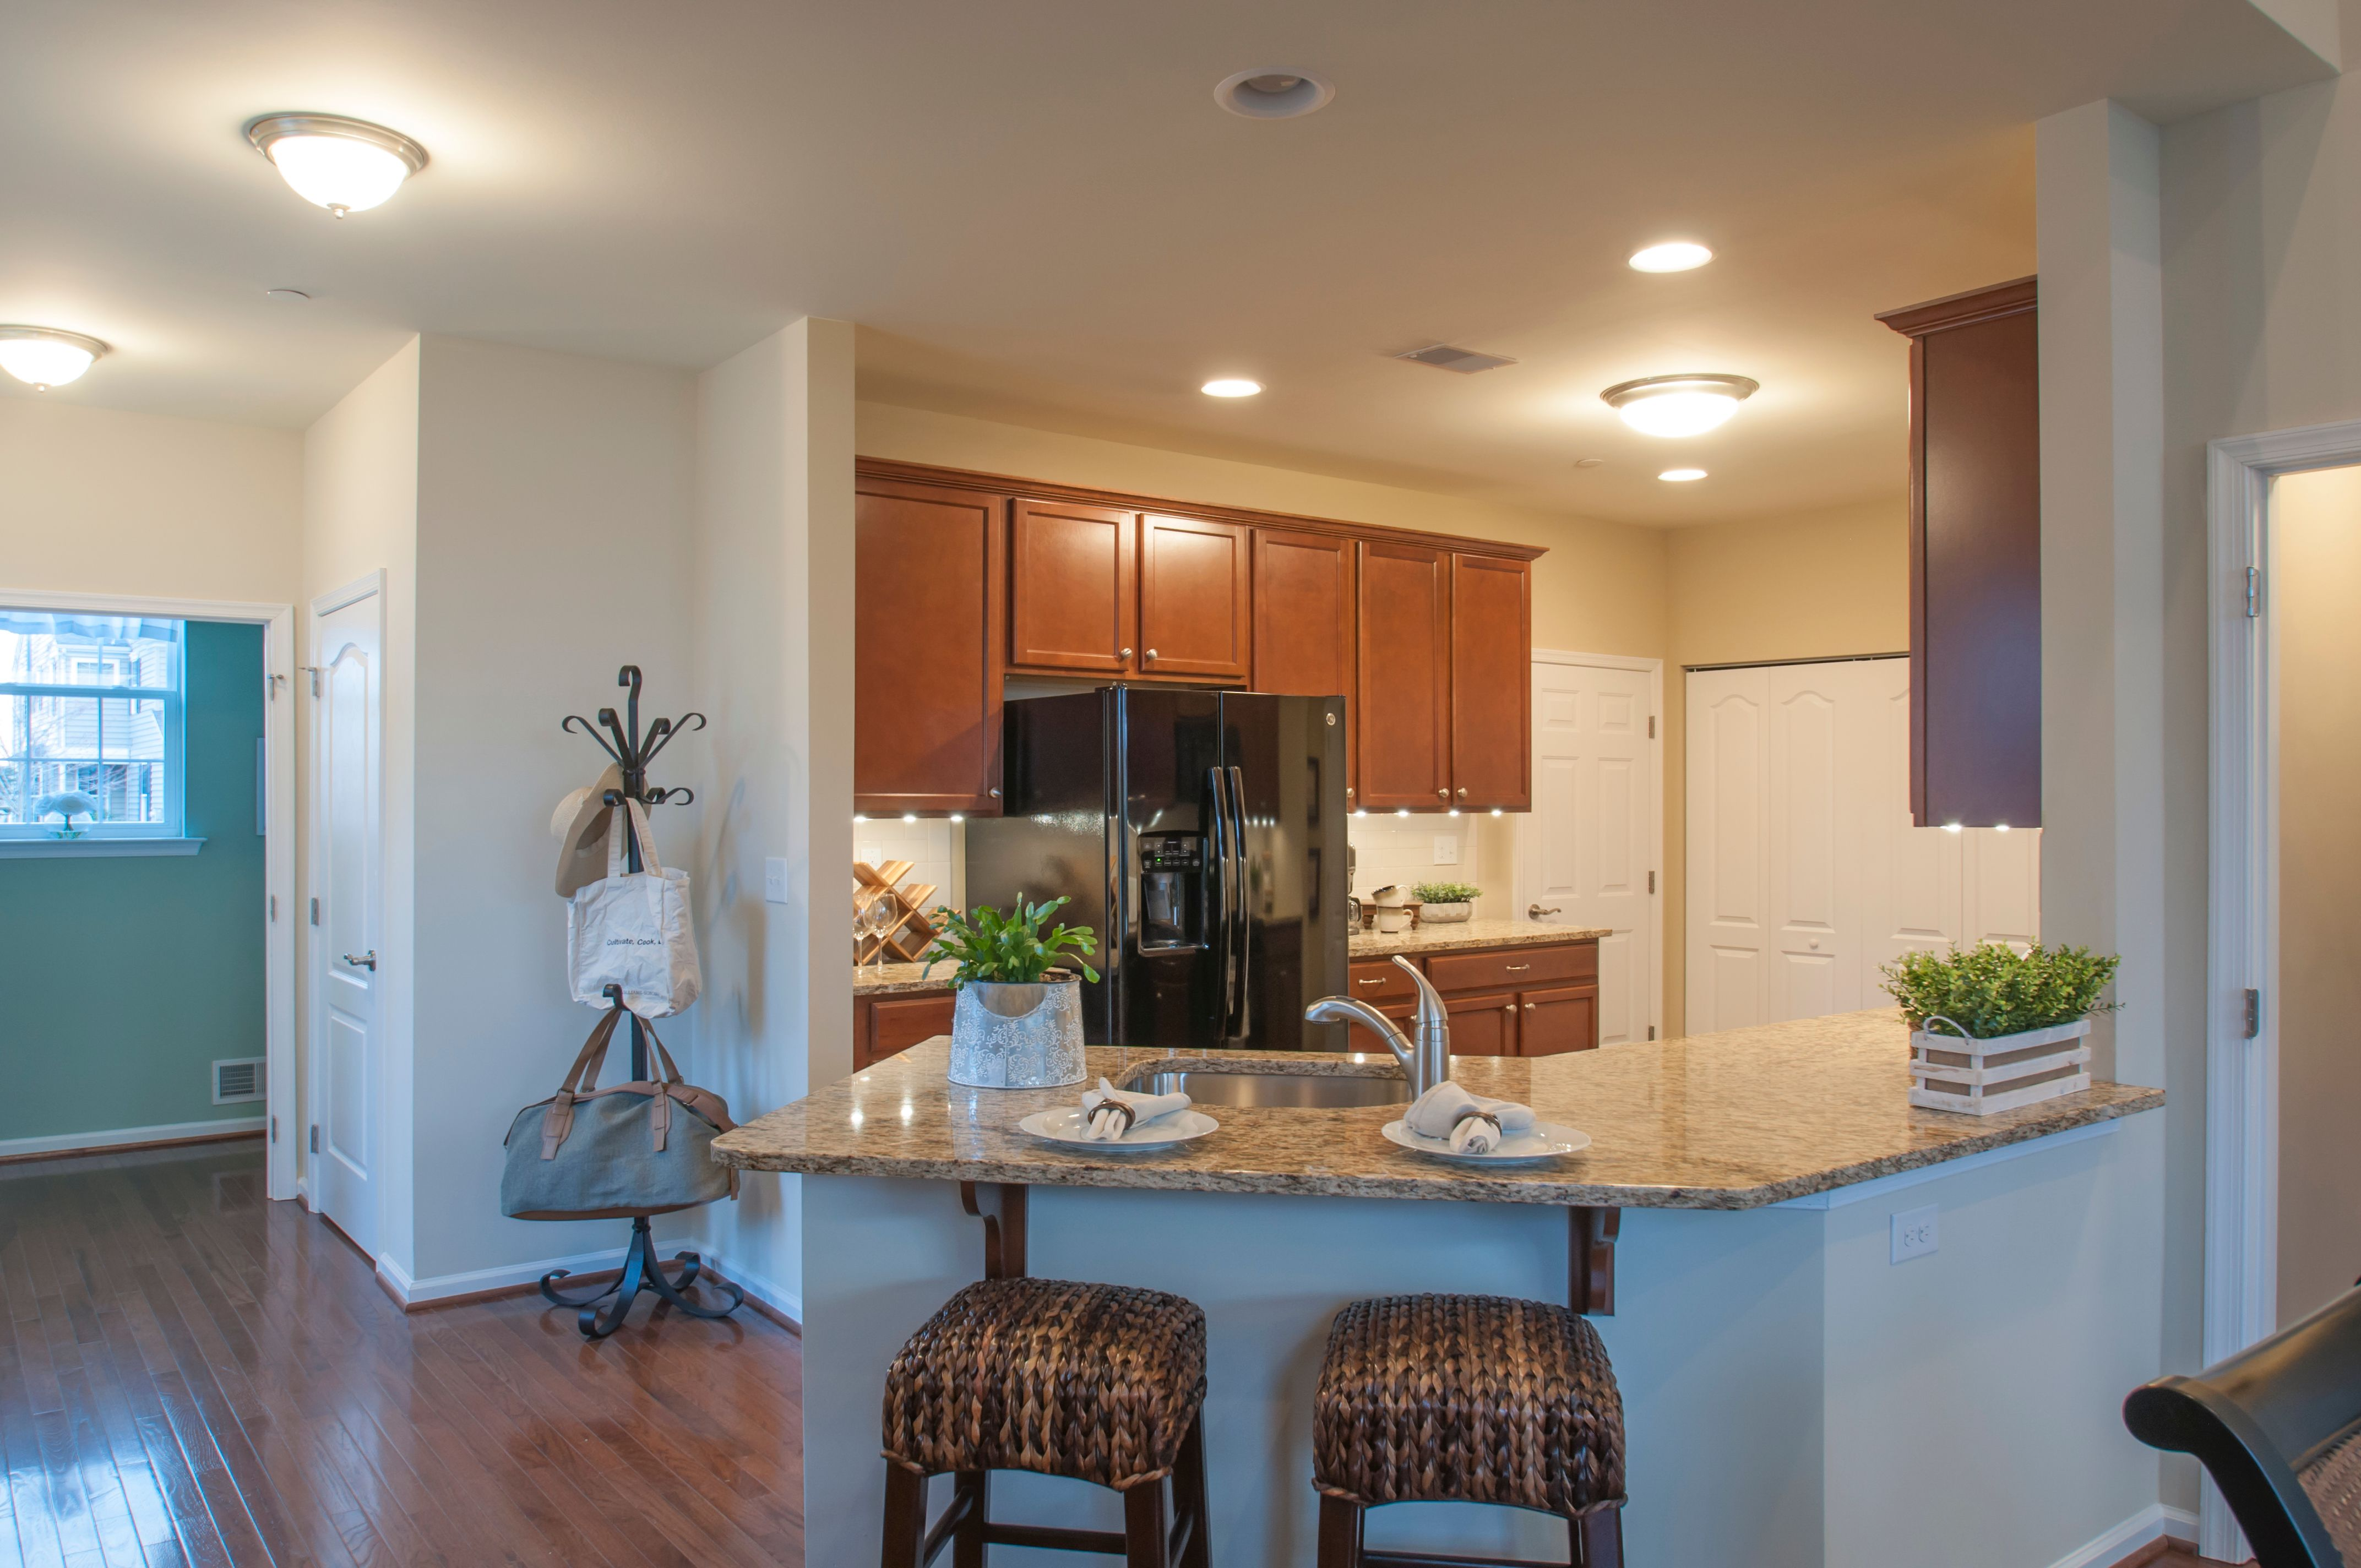 Kitchen featured in the Monarch By Sal Lapio Homes in Allentown-Bethlehem, PA